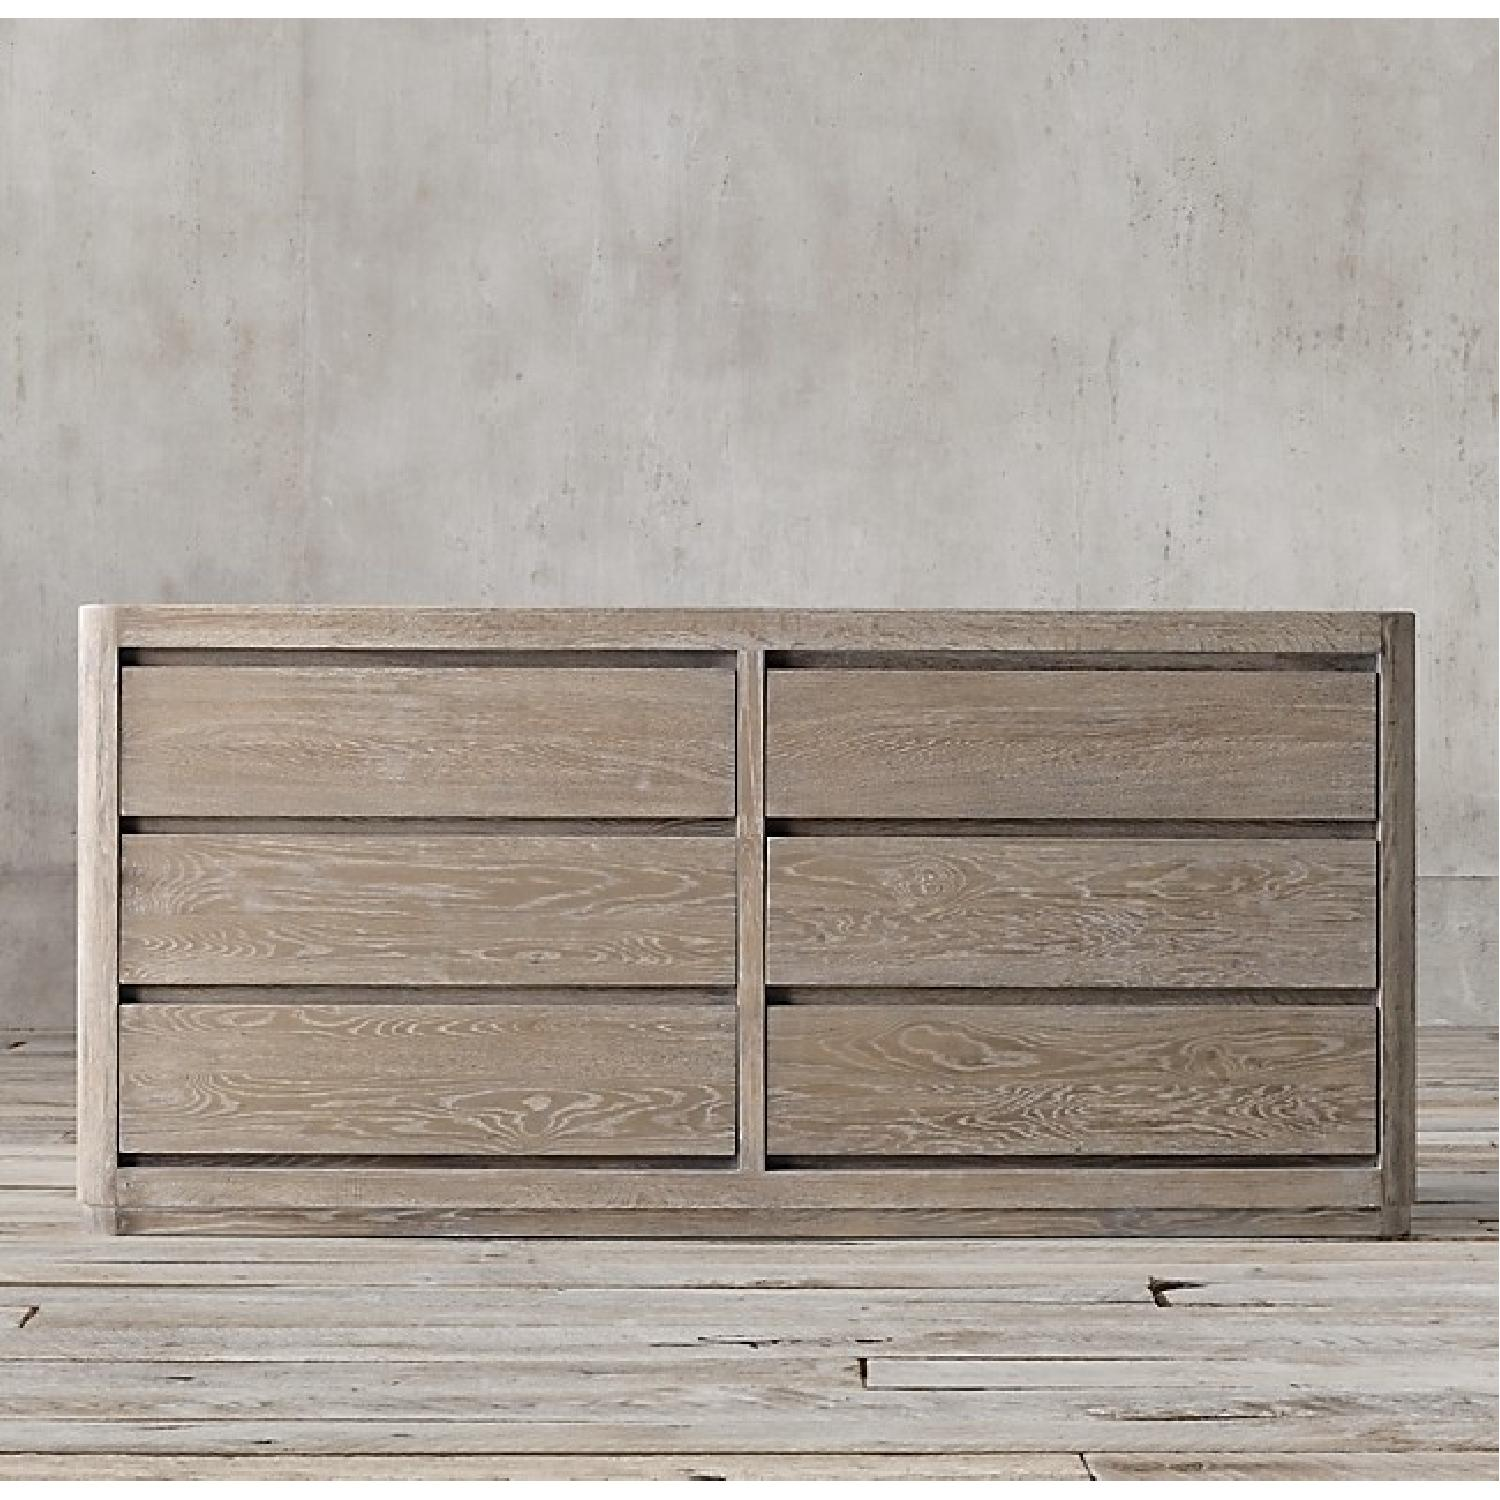 Restoration Hardware Martens 6-Drawer Dresser in Aged Oak